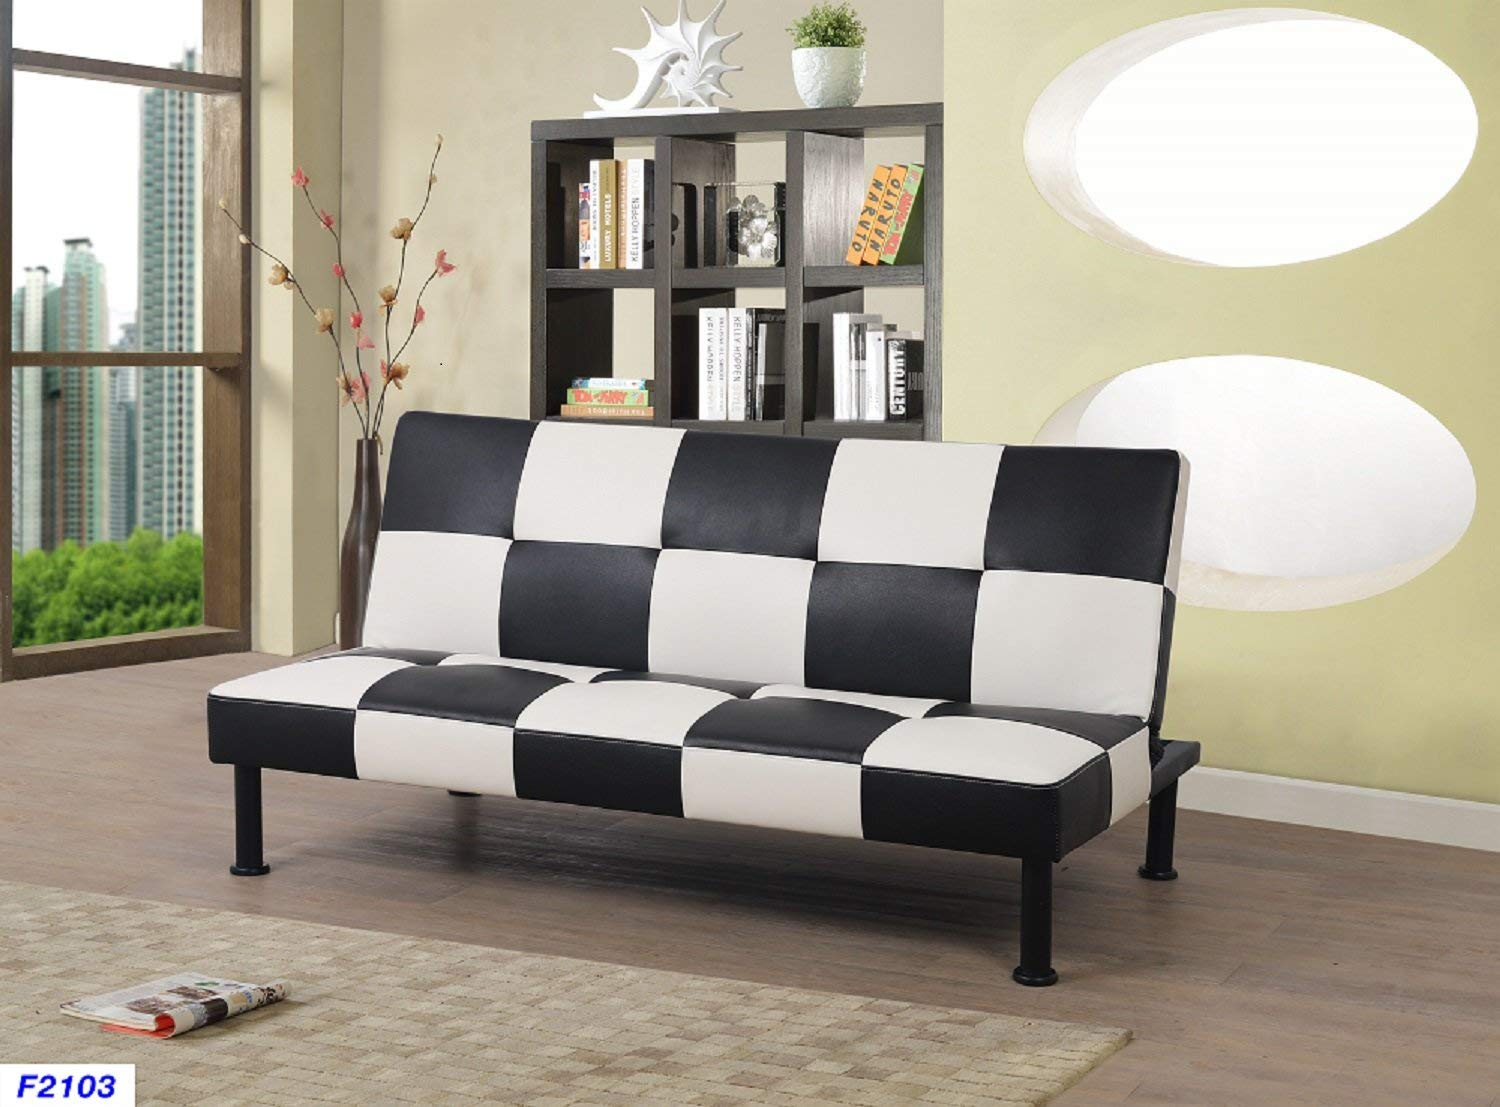 Black And White Checkered Design Adjule Sofa Futon Portland Oregon